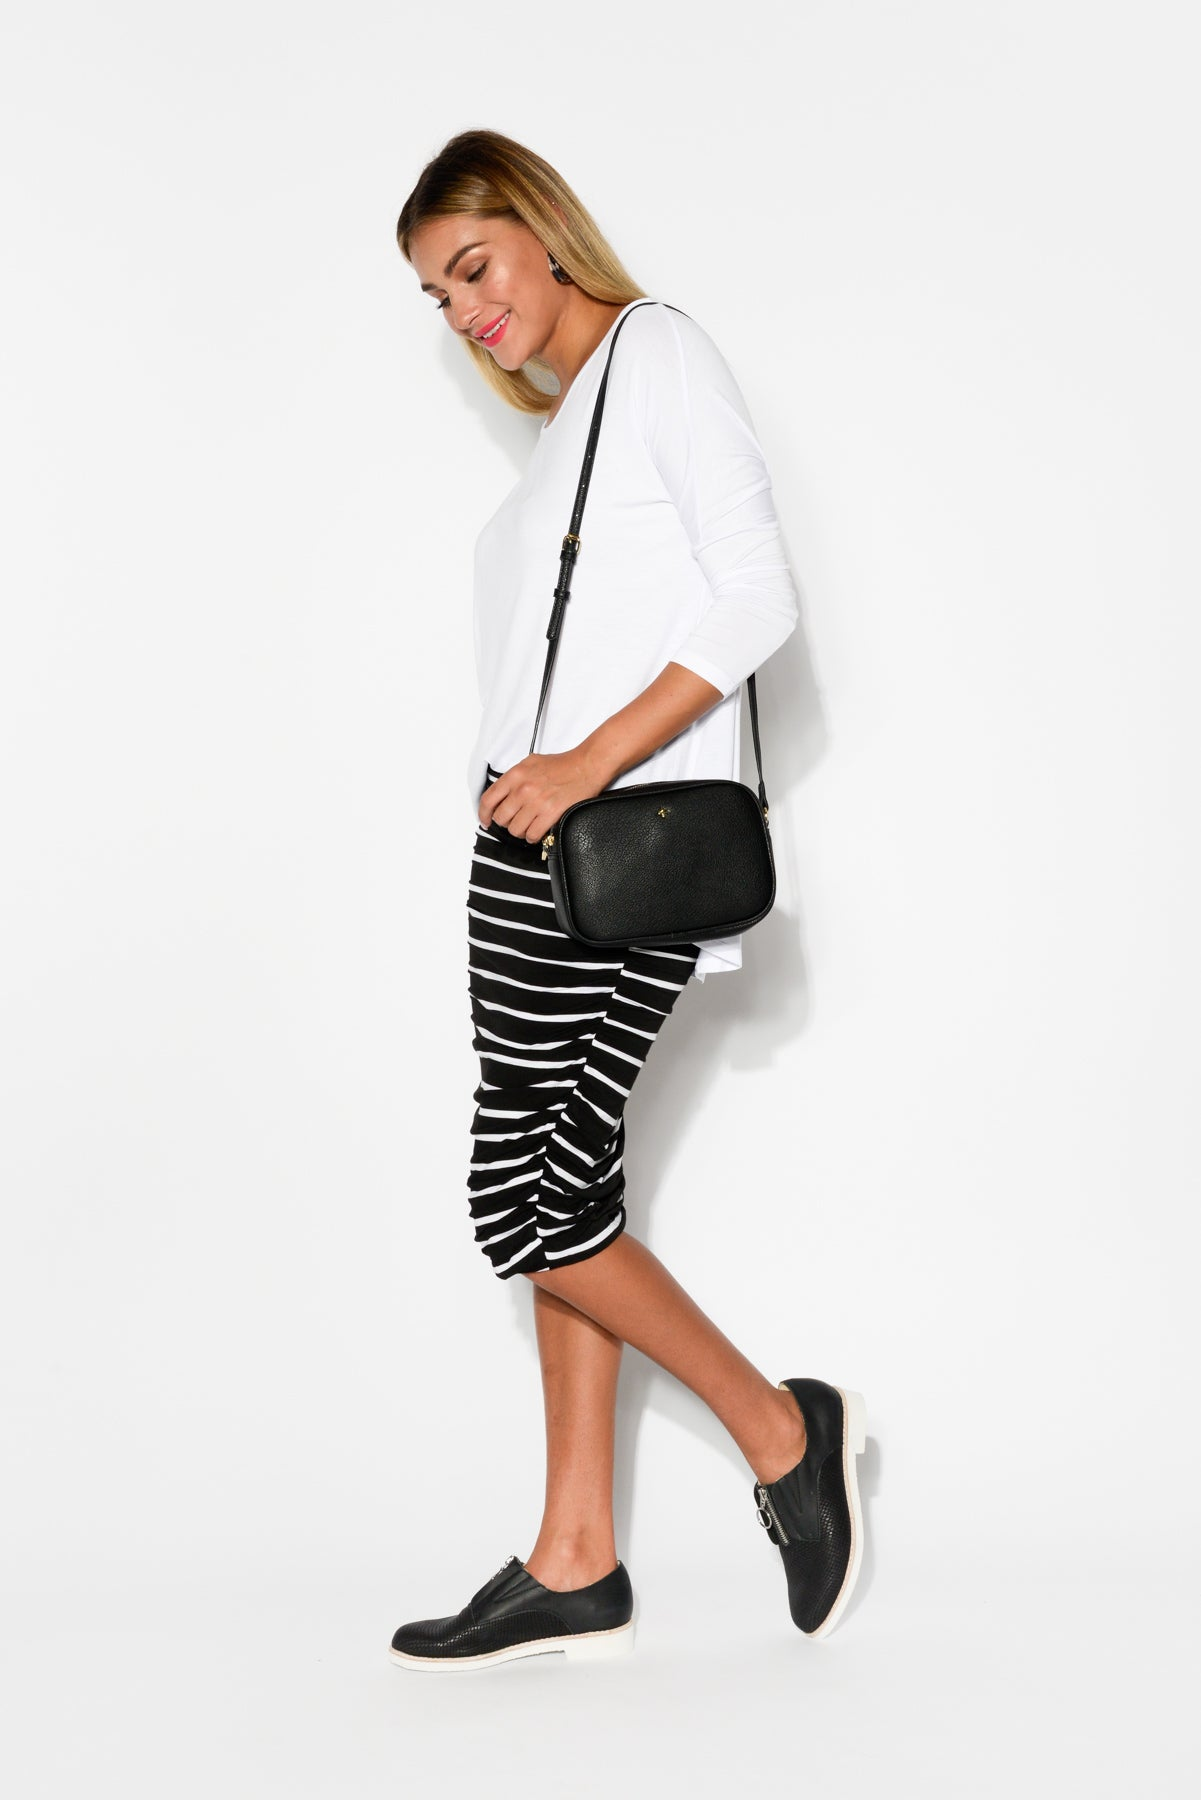 Black Stripe Ruched Skirt - Blue Bungalow